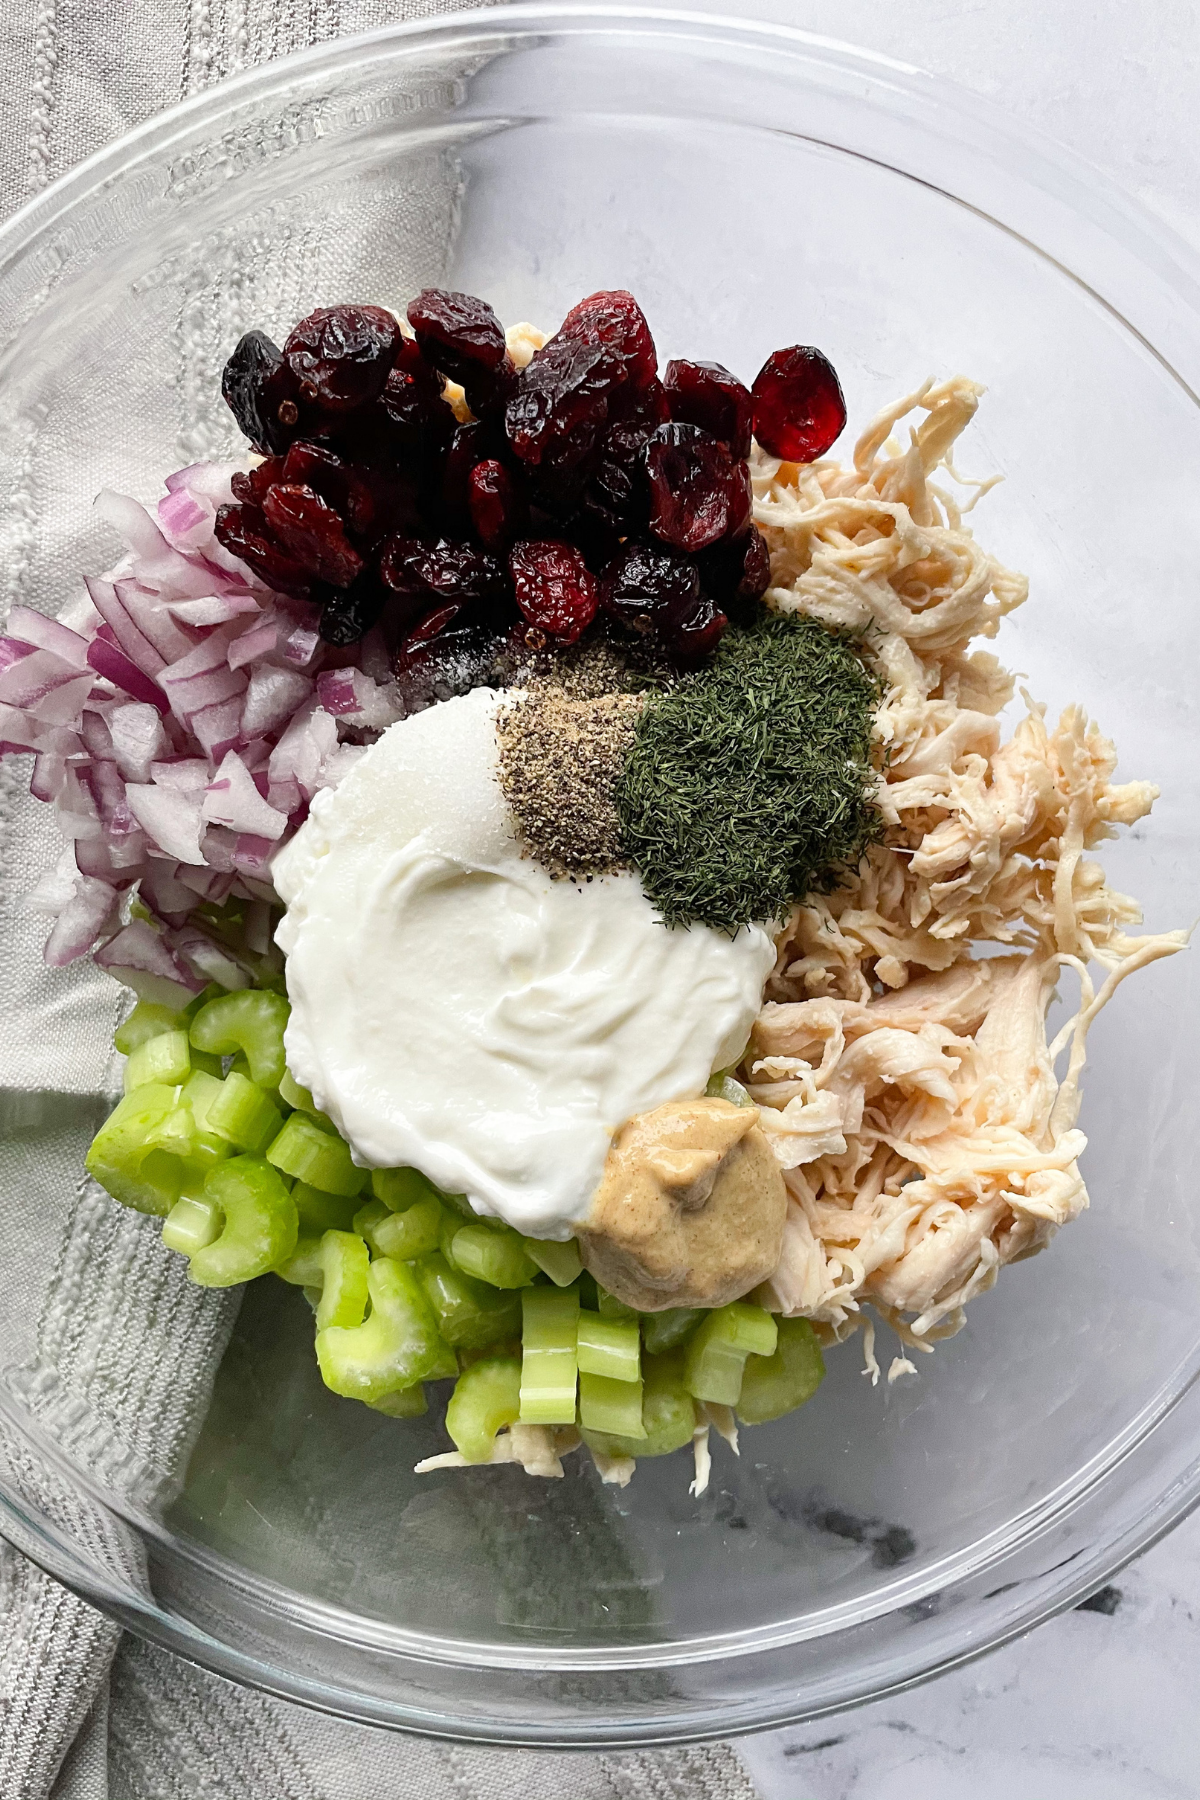 Ingredients for Healthy Chicken Salad in a bowl